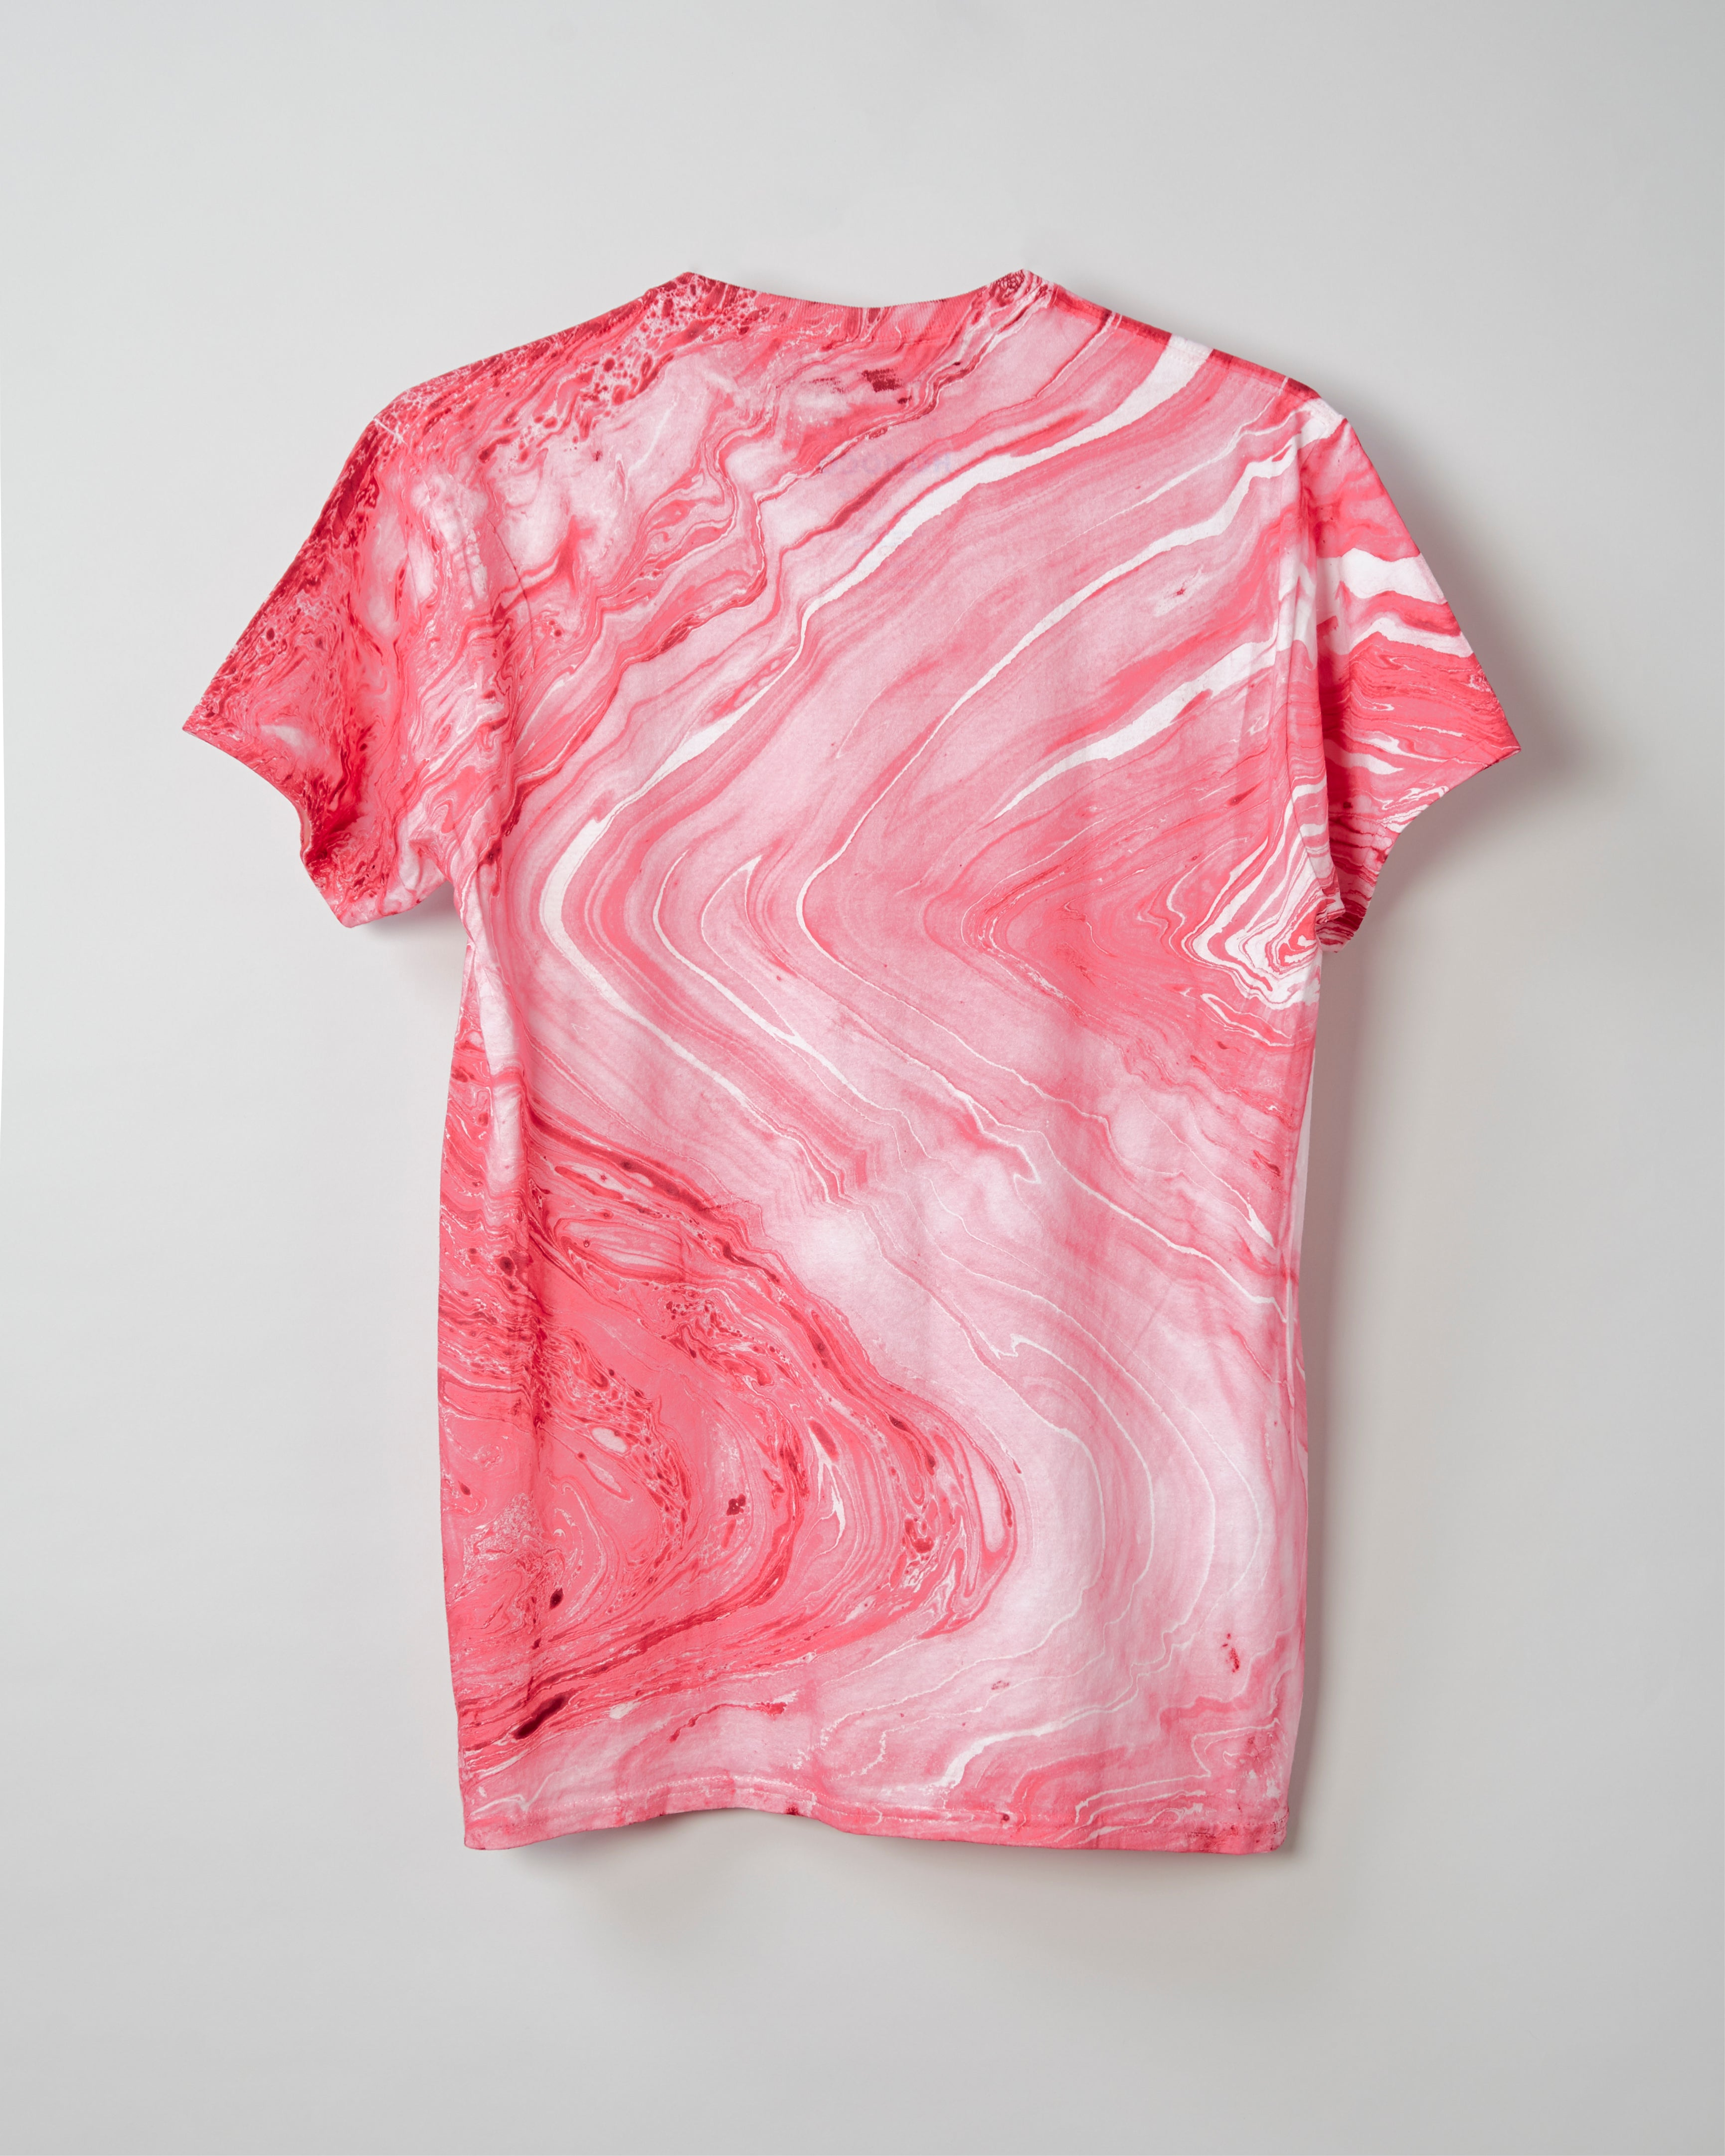 HOMOCO Thank You T-Shirt - Red Marble